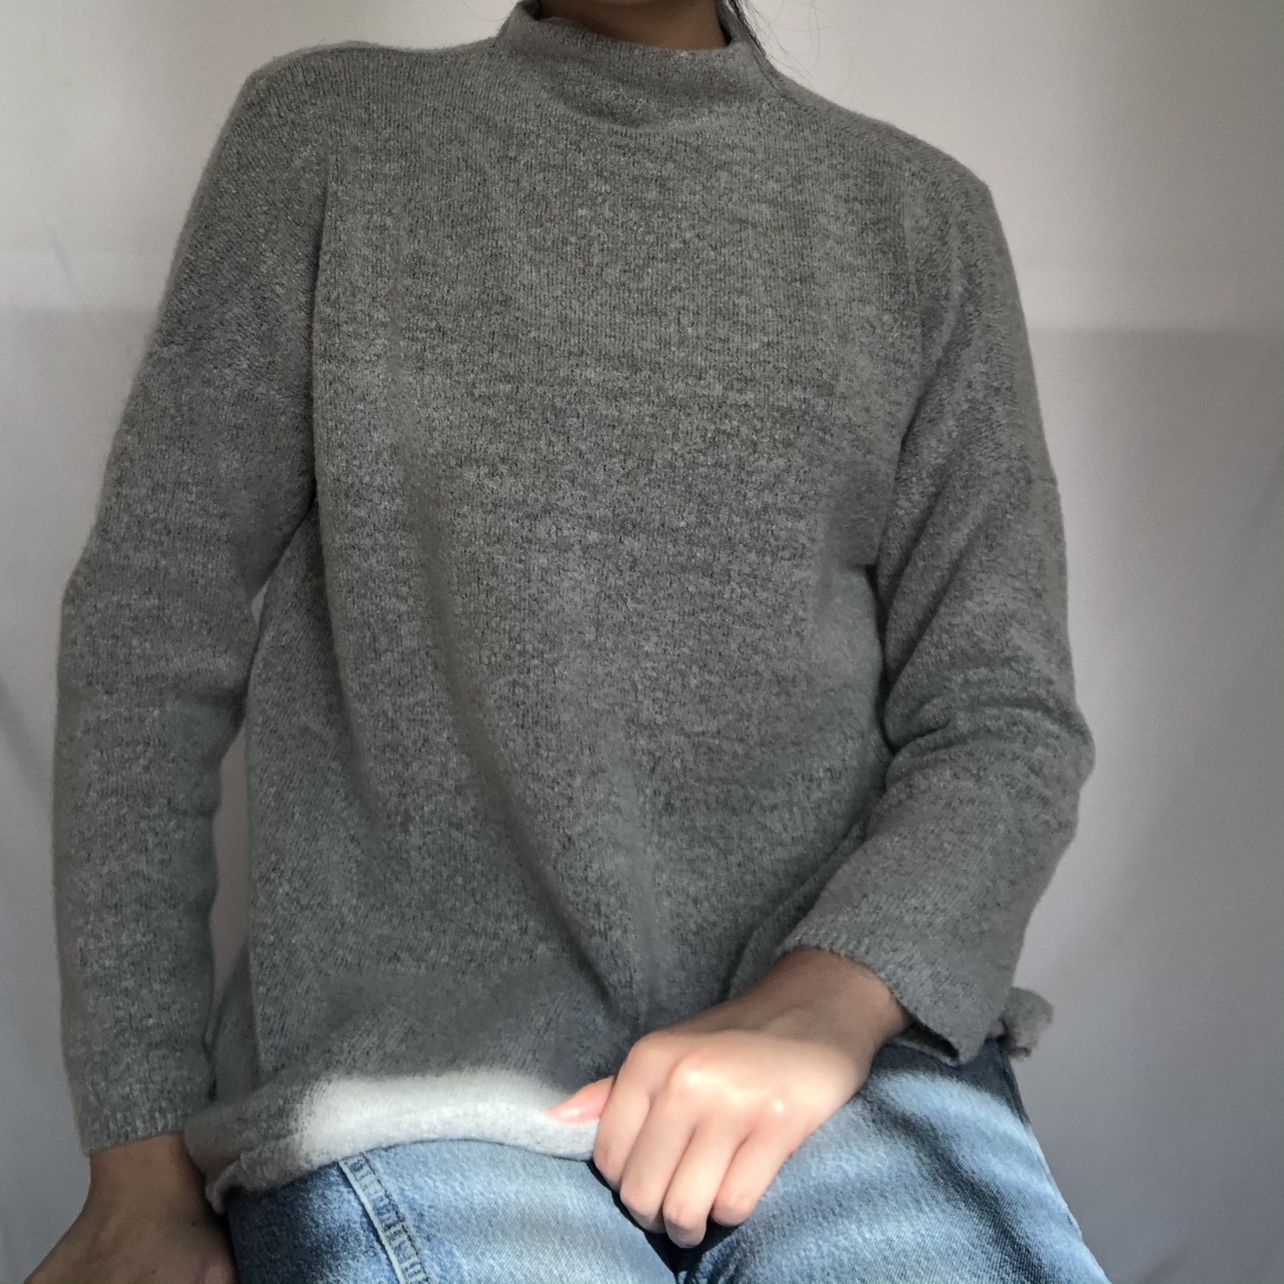 CottonOn light gray mockneck sweater. So soft and cozy